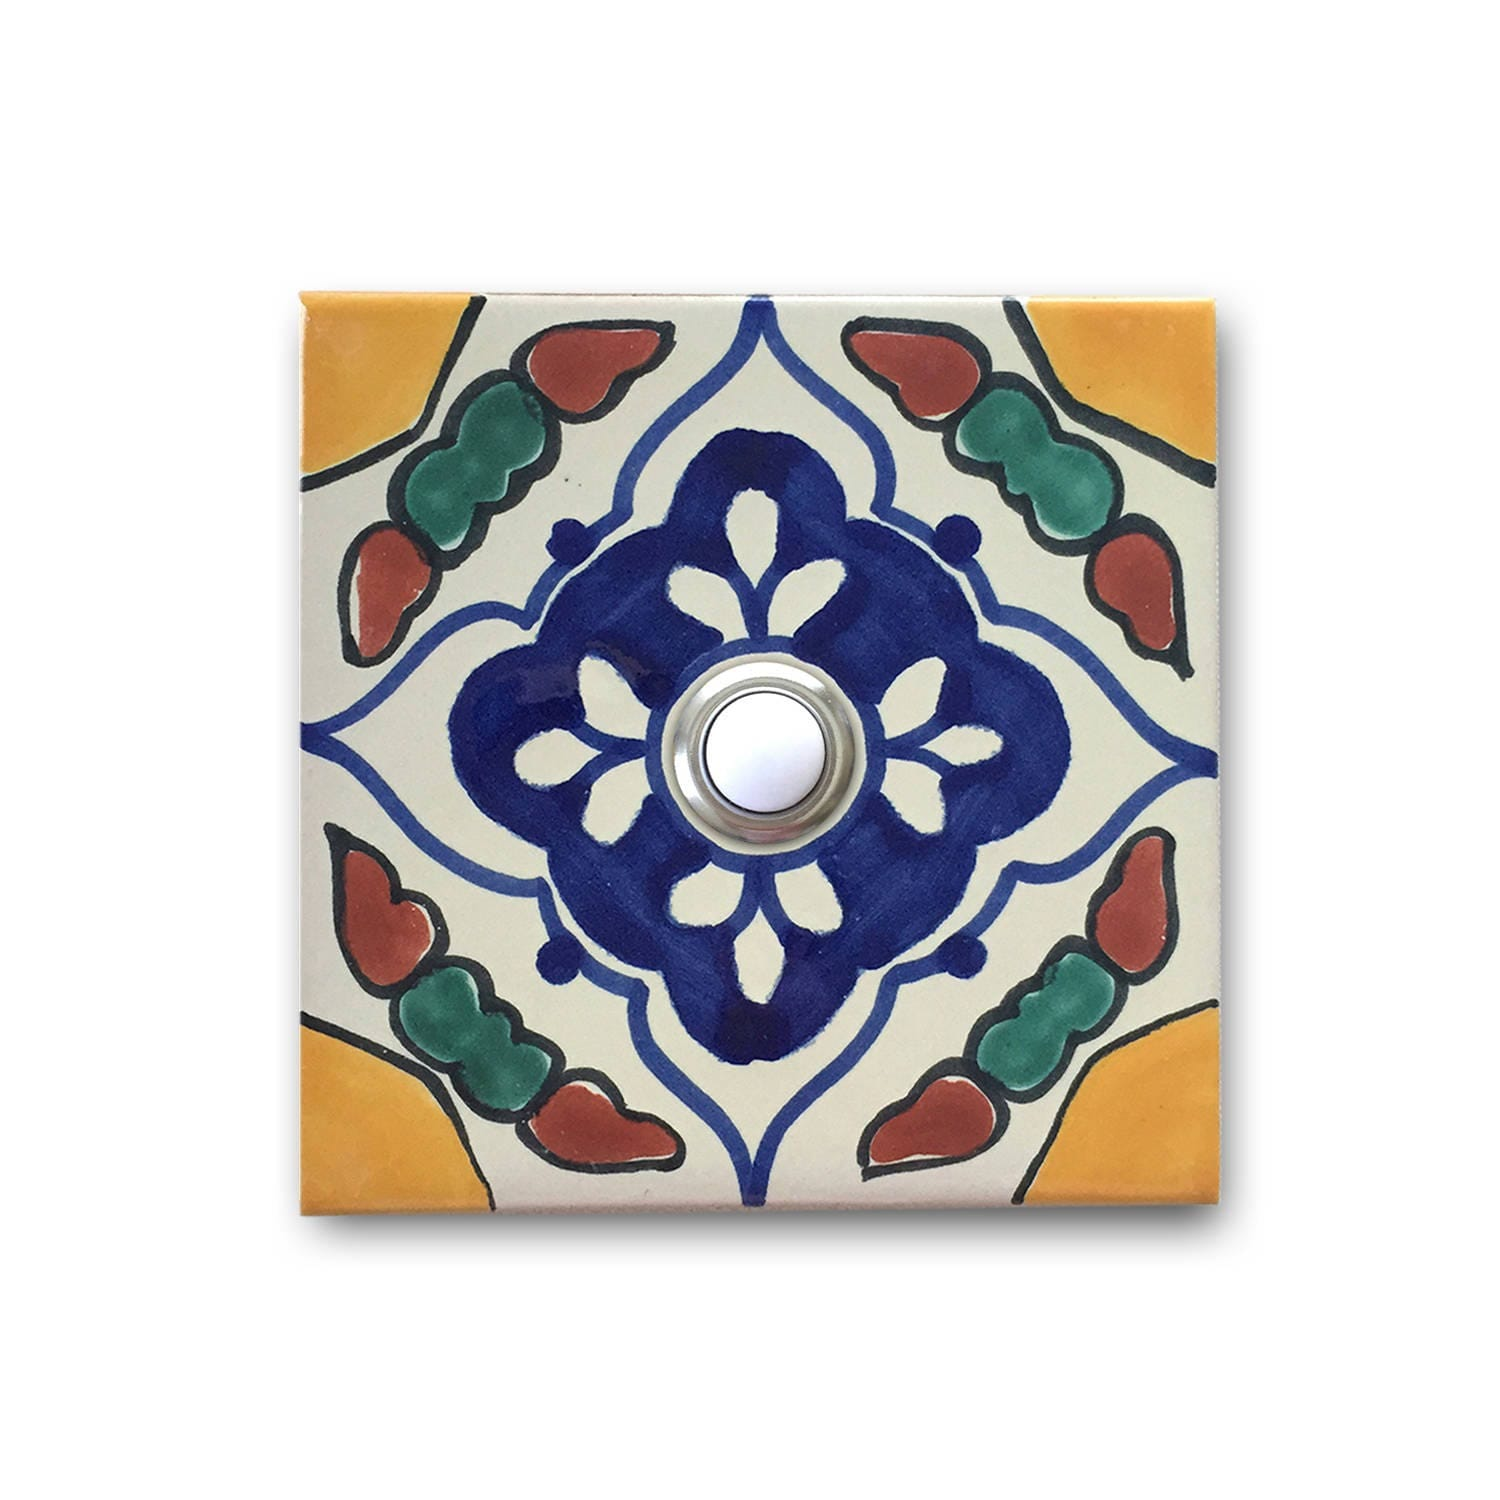 3x3 ceramic tile image collections tile flooring design ideas doorbell 3x3 handcrafted ceramic tile cover with lighted zoom doublecrazyfo image collections dailygadgetfo Images